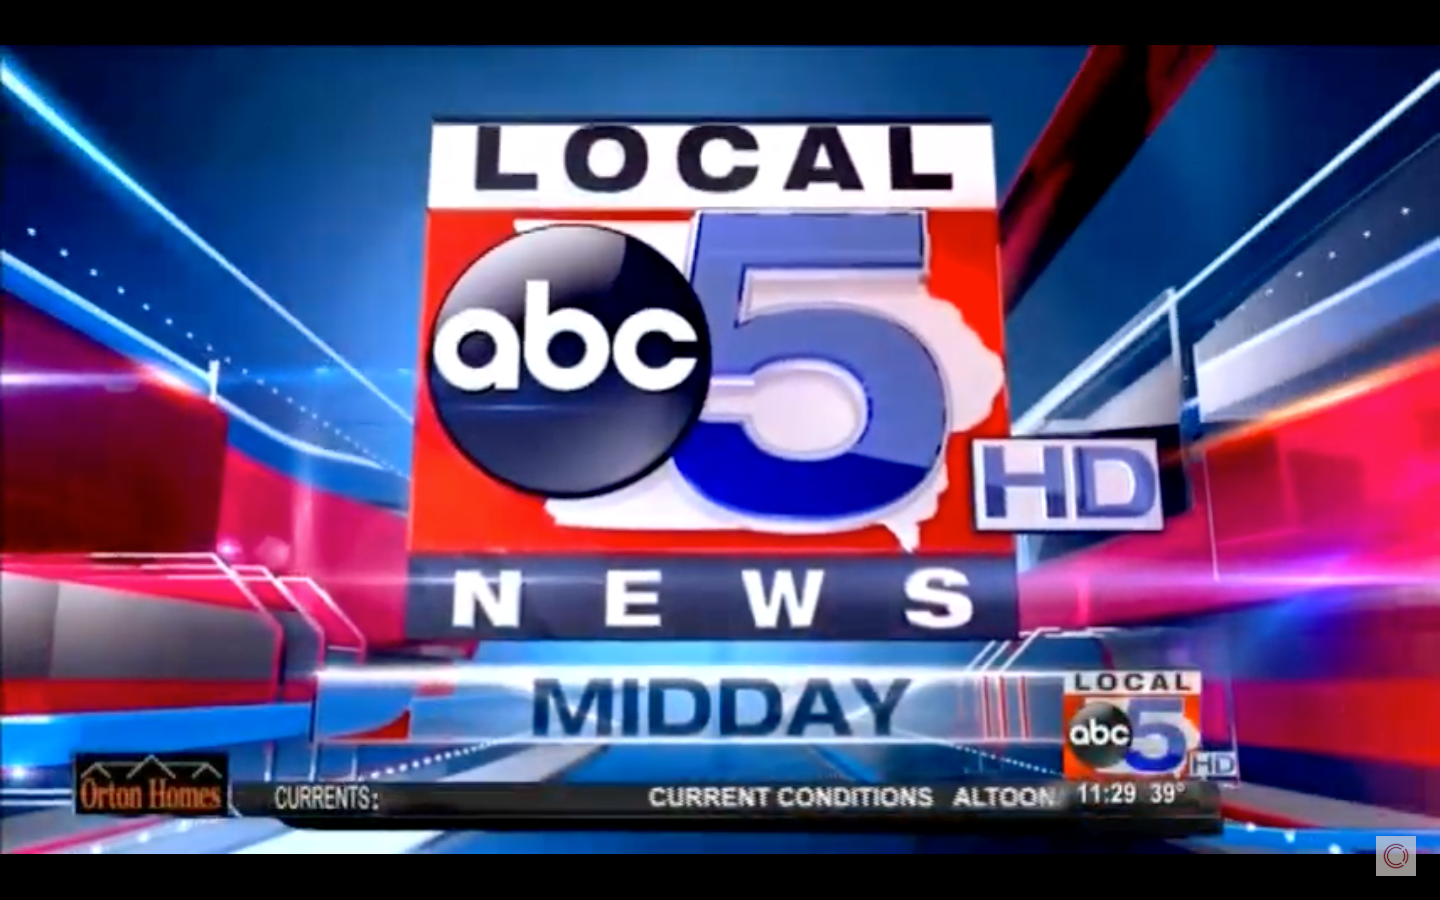 ABC 5 Des Moines – Laundry Project Story #2